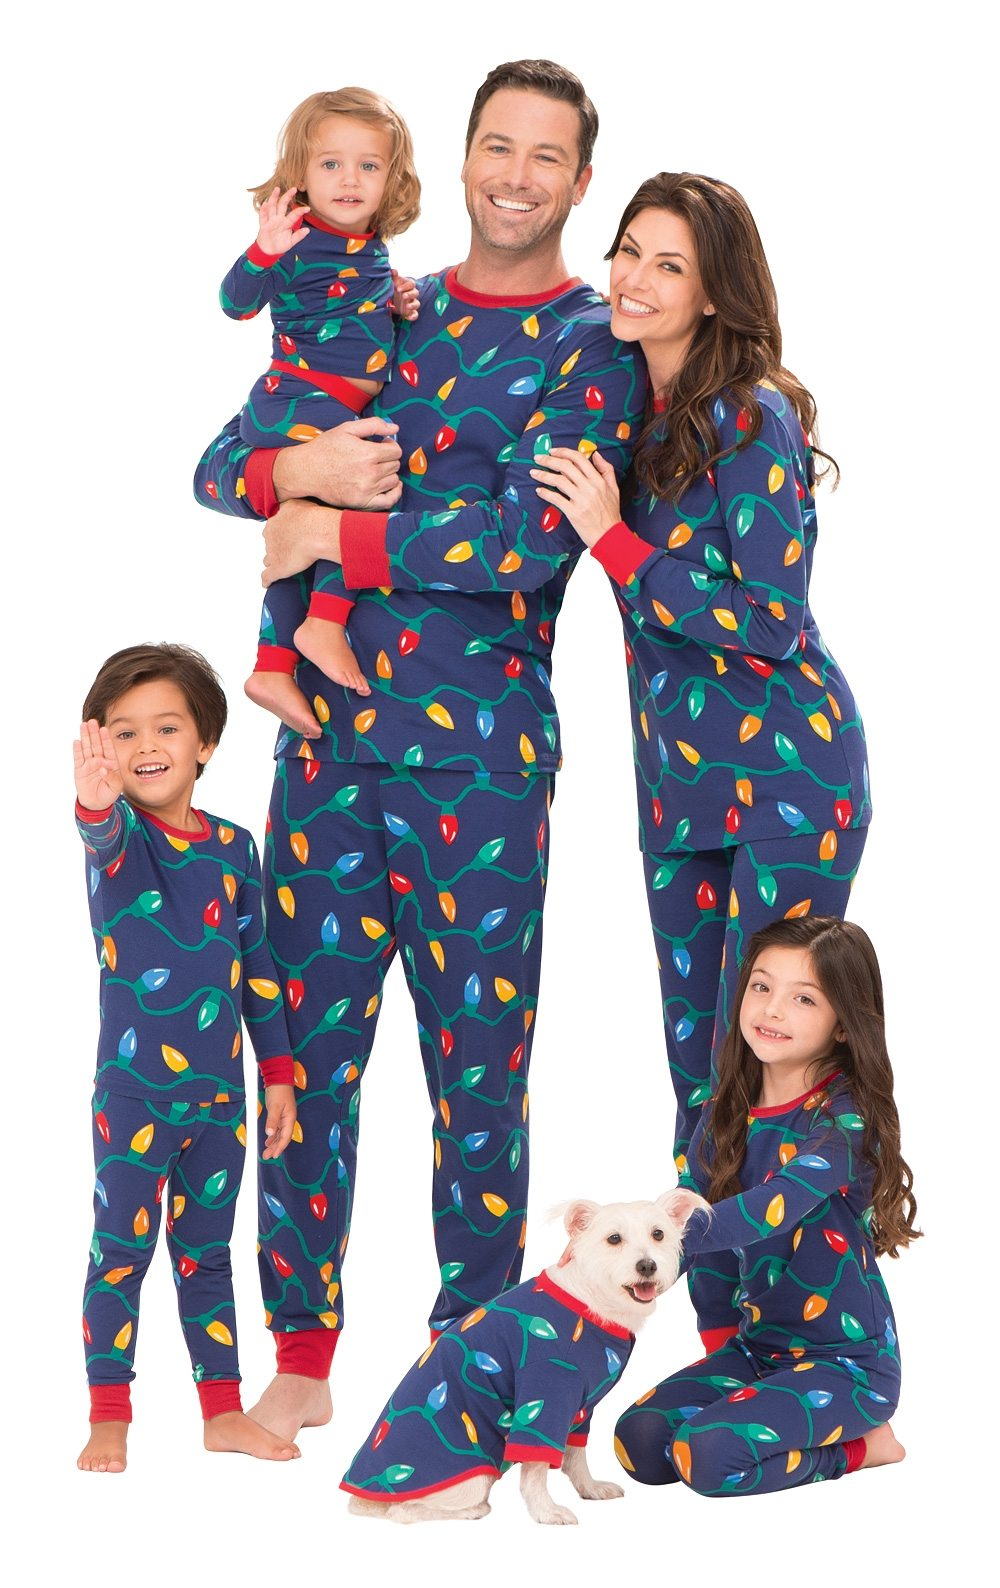 Dolphin&Fish Boys Christmas Pajamas Kids PJS Sets Cotton Toddler Clothes Children Sleepwear. by Dolphin&Fish. $ - $ $ 13 $ 22 99 Prime. FREE Shipping on eligible orders. Some sizes/colors are Prime eligible. out of 5 stars 6. Product Features % Cotton Pajamas.